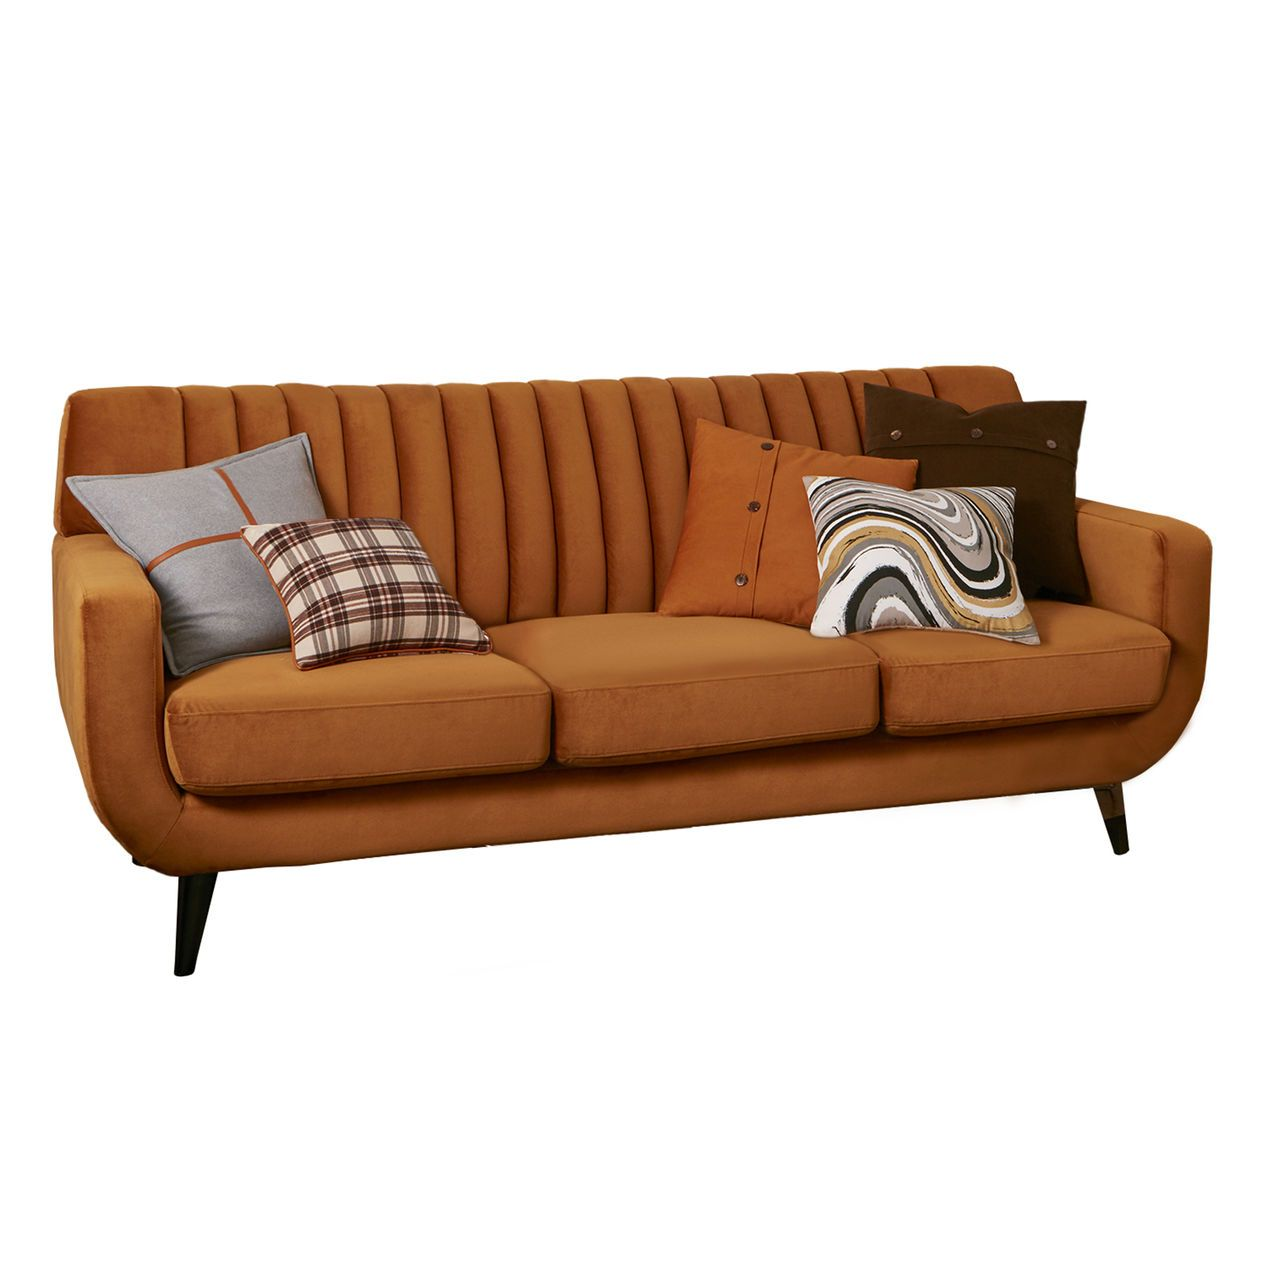 hedgewick burnt orange sofa - at home | retro raves! | pinterest